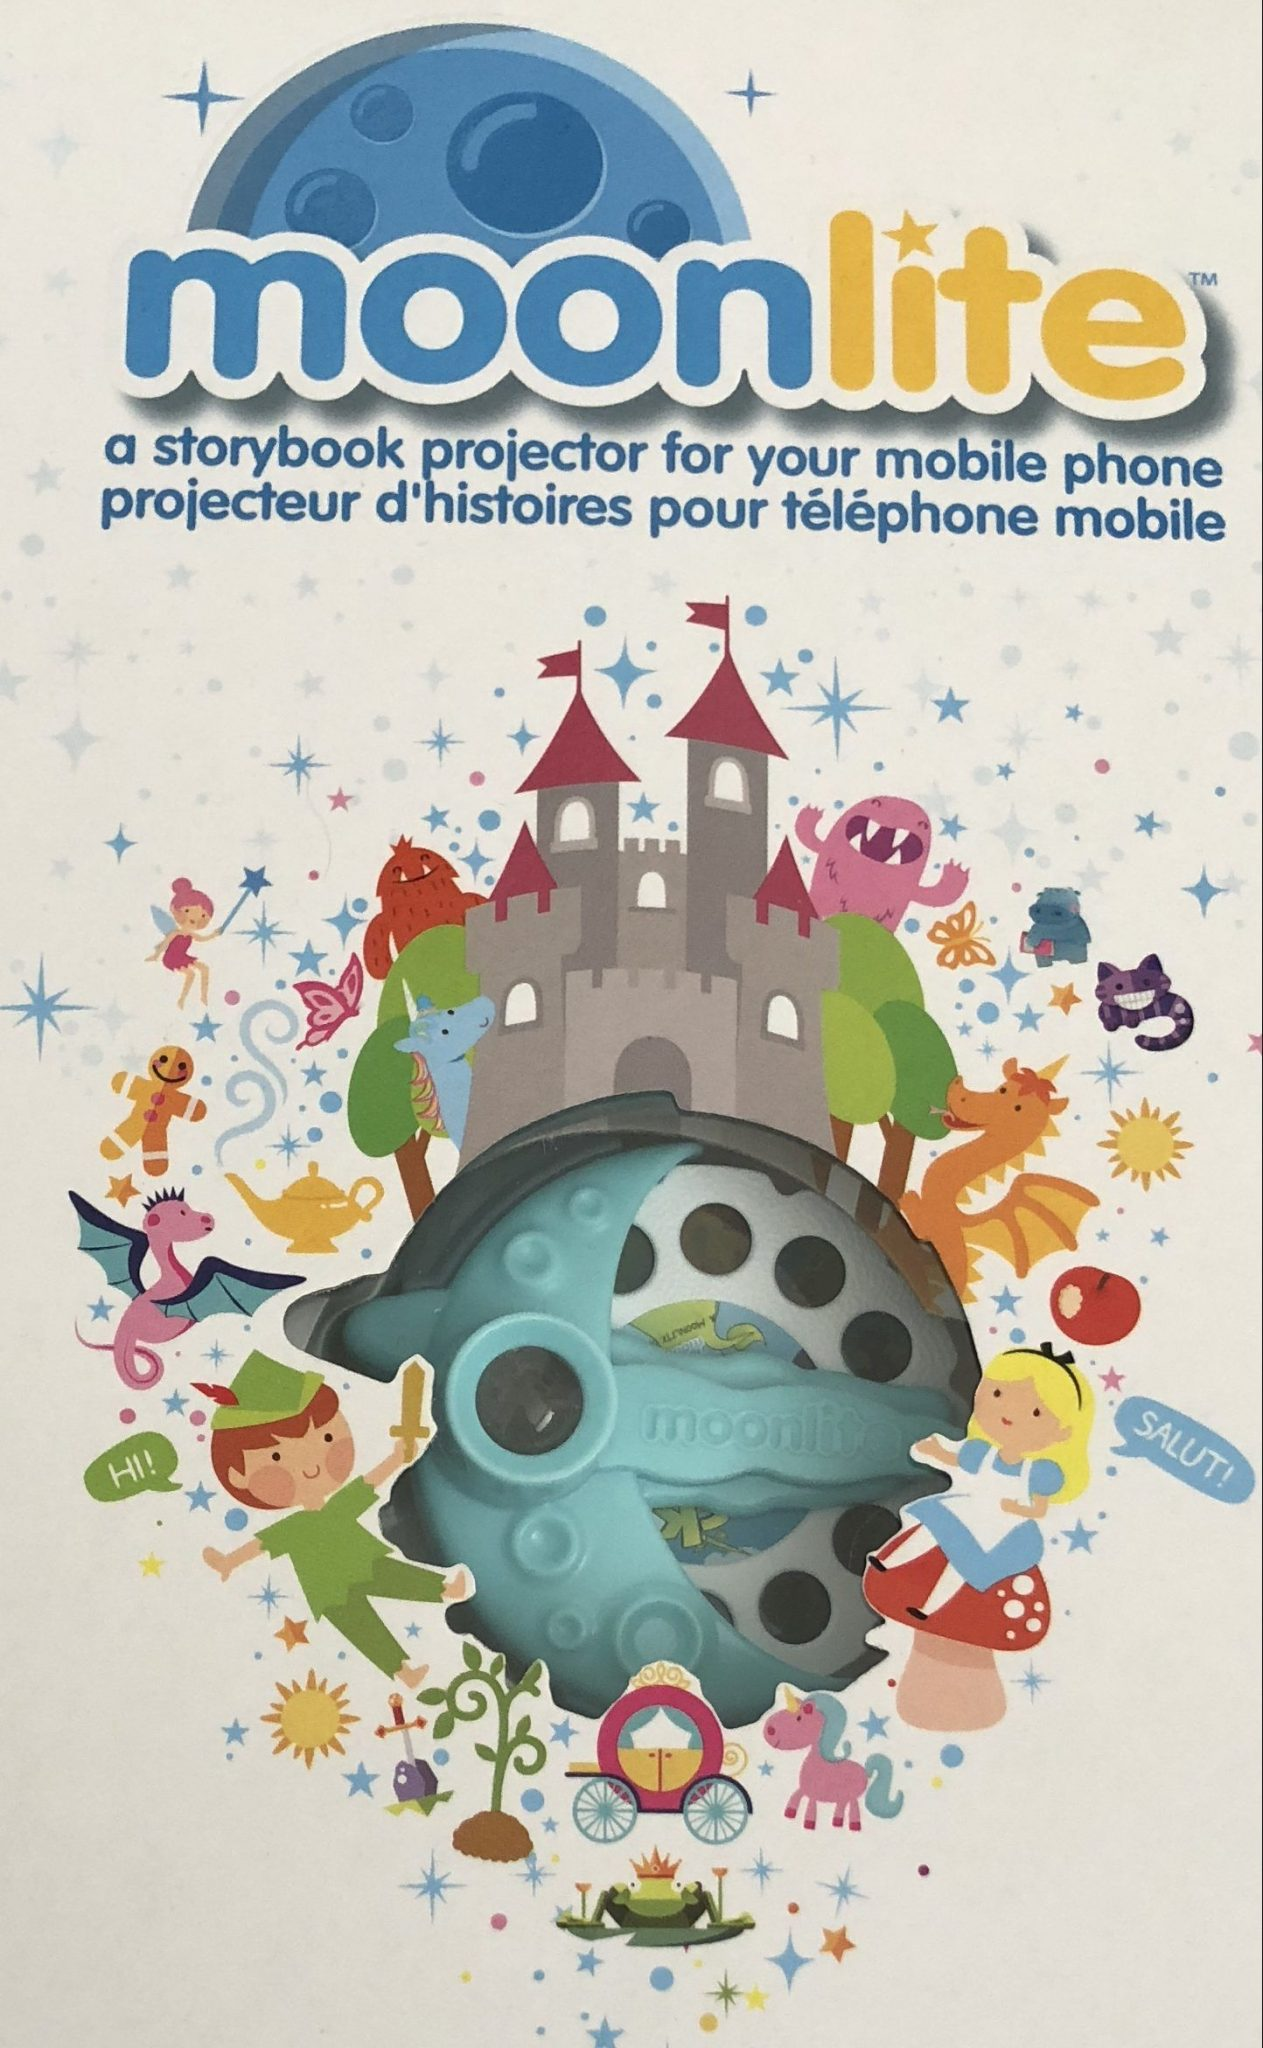 Moonlite Children's Storybook Projector Review